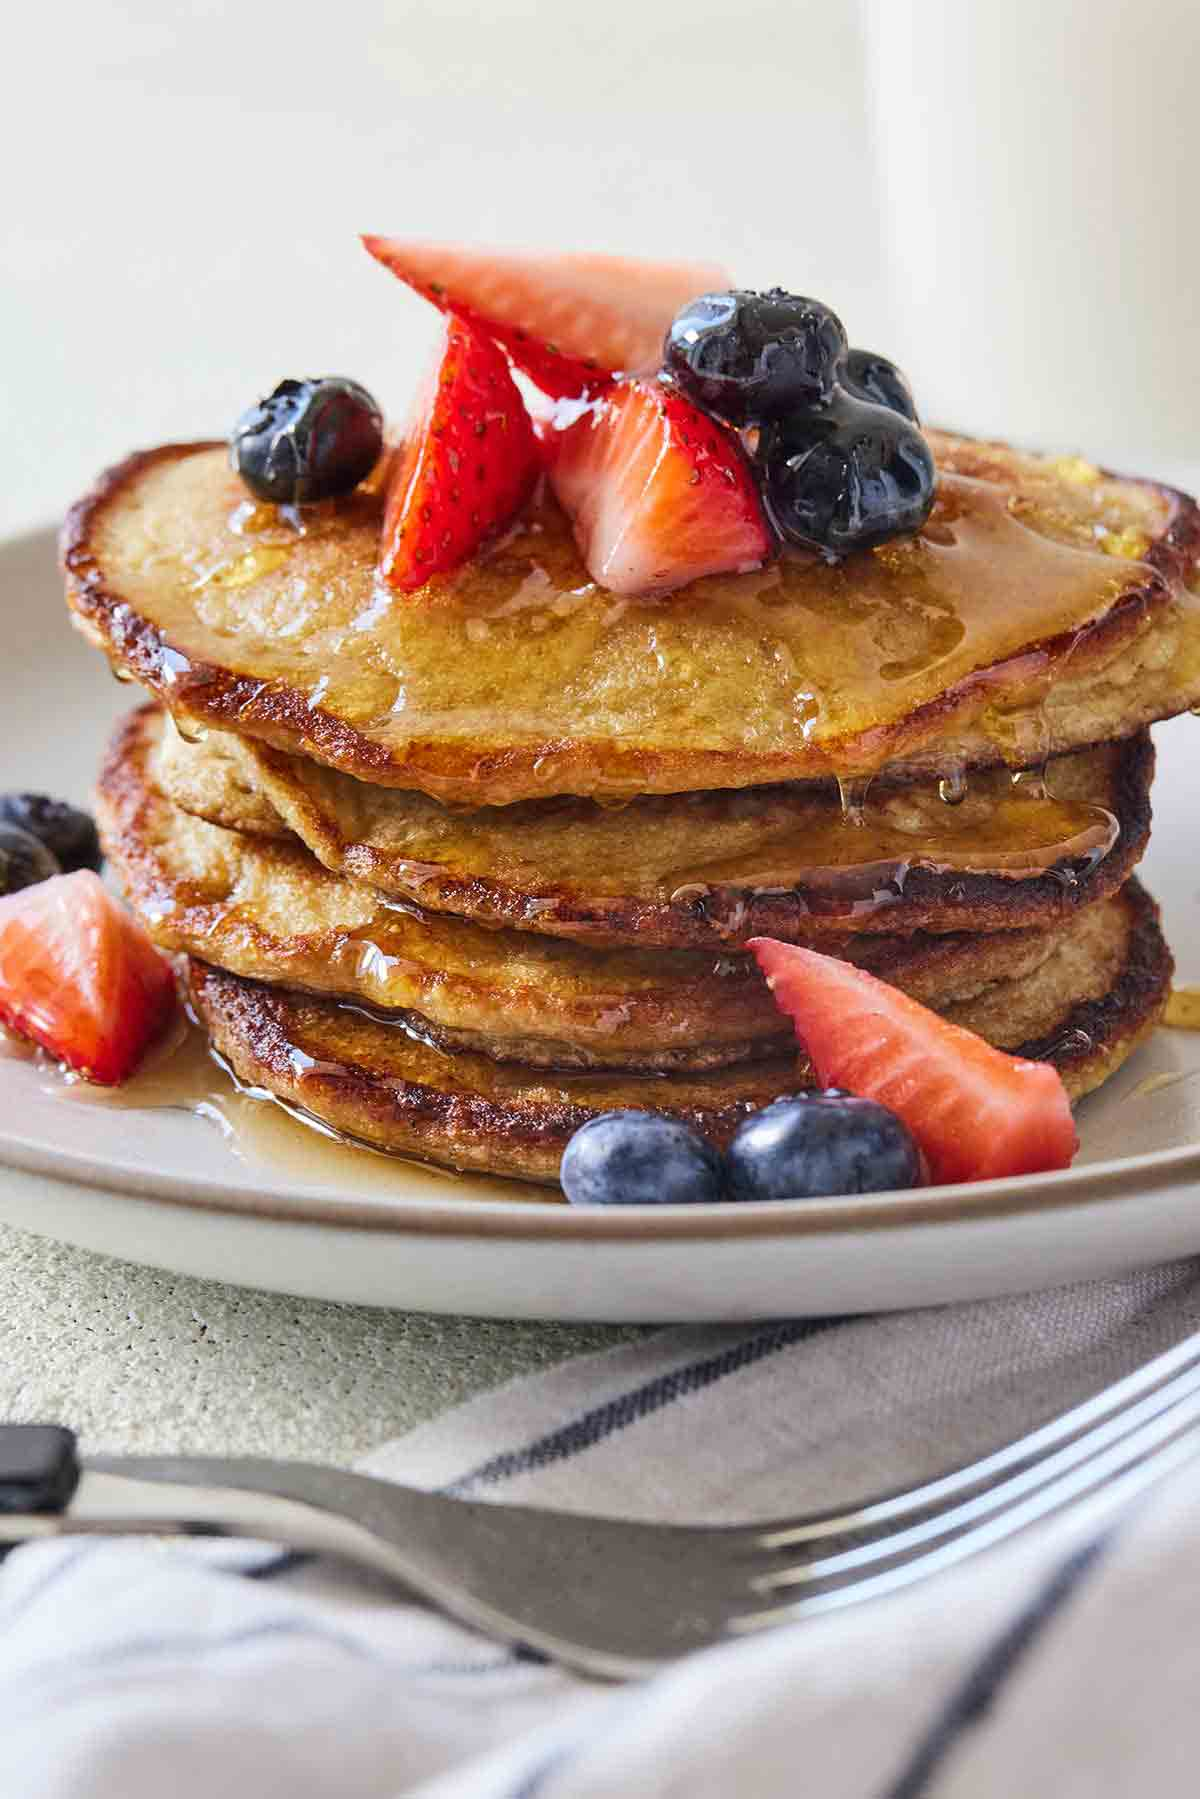 A stack of multiple banana oatmeal pancakes with fruit on top.